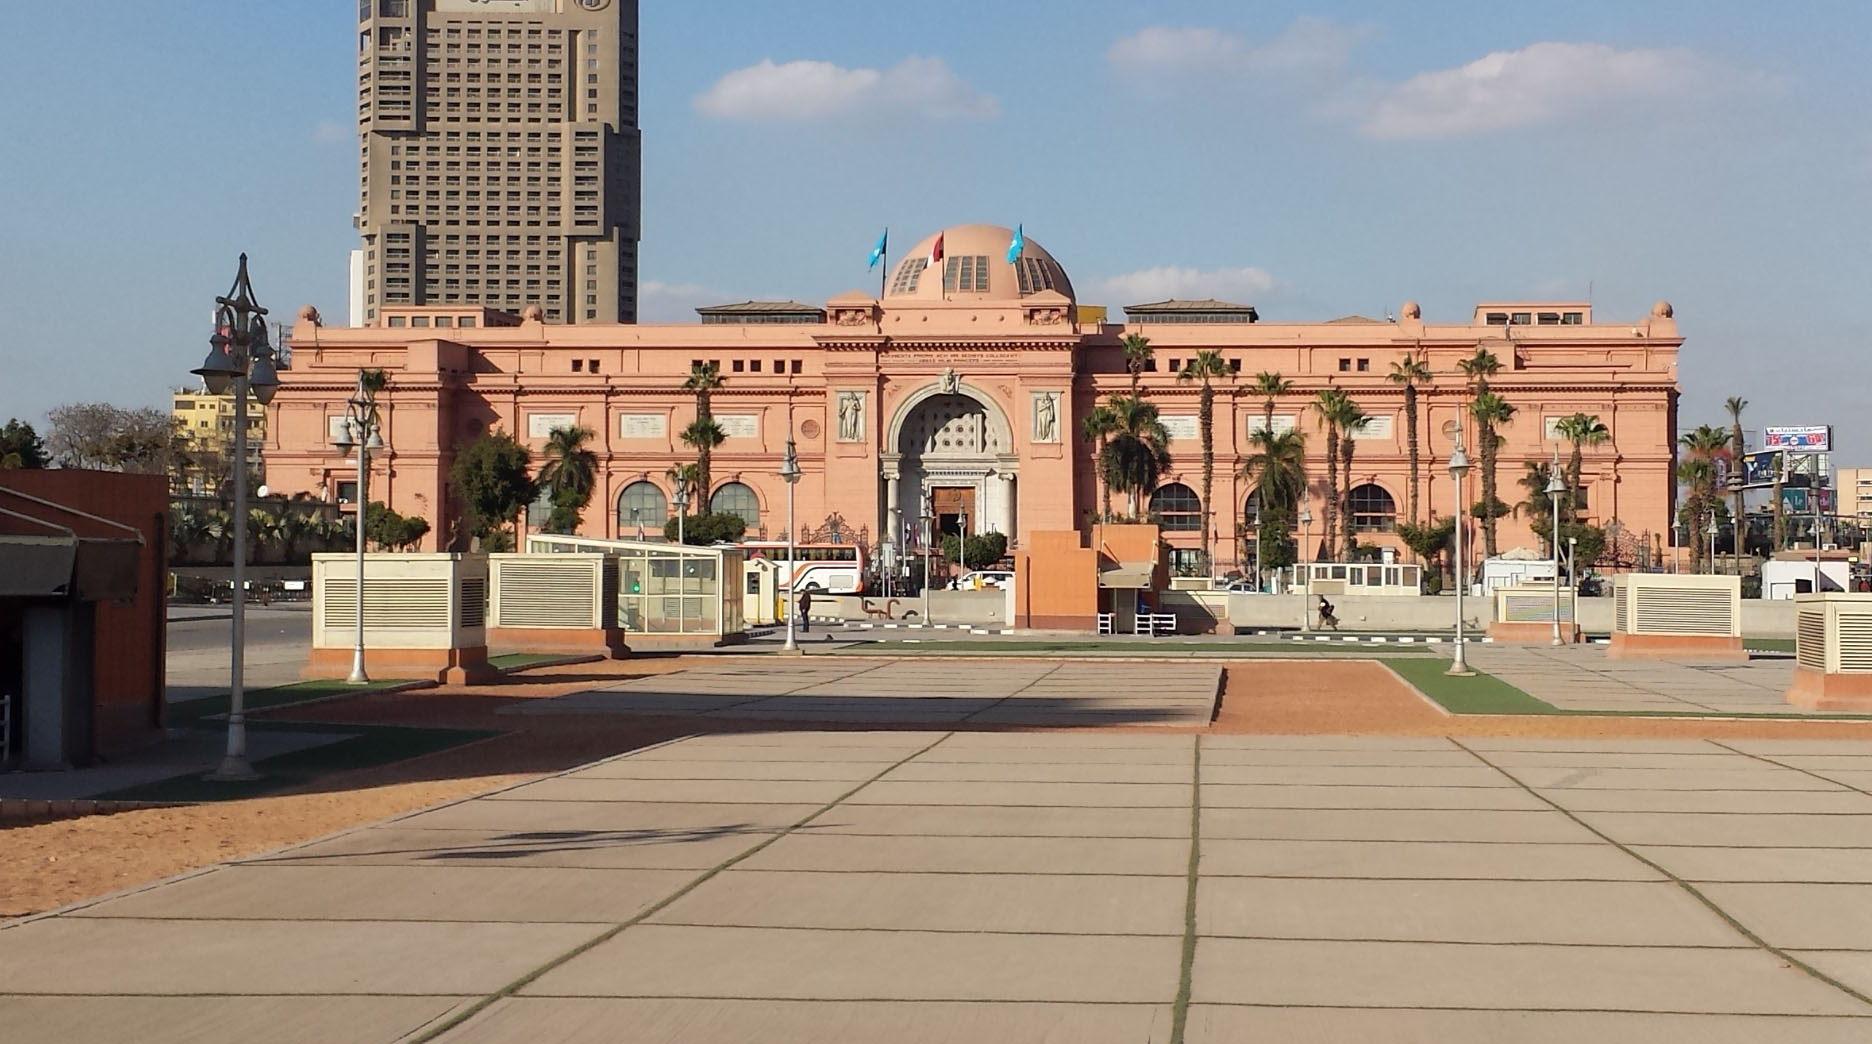 The Egyptian museum (front).